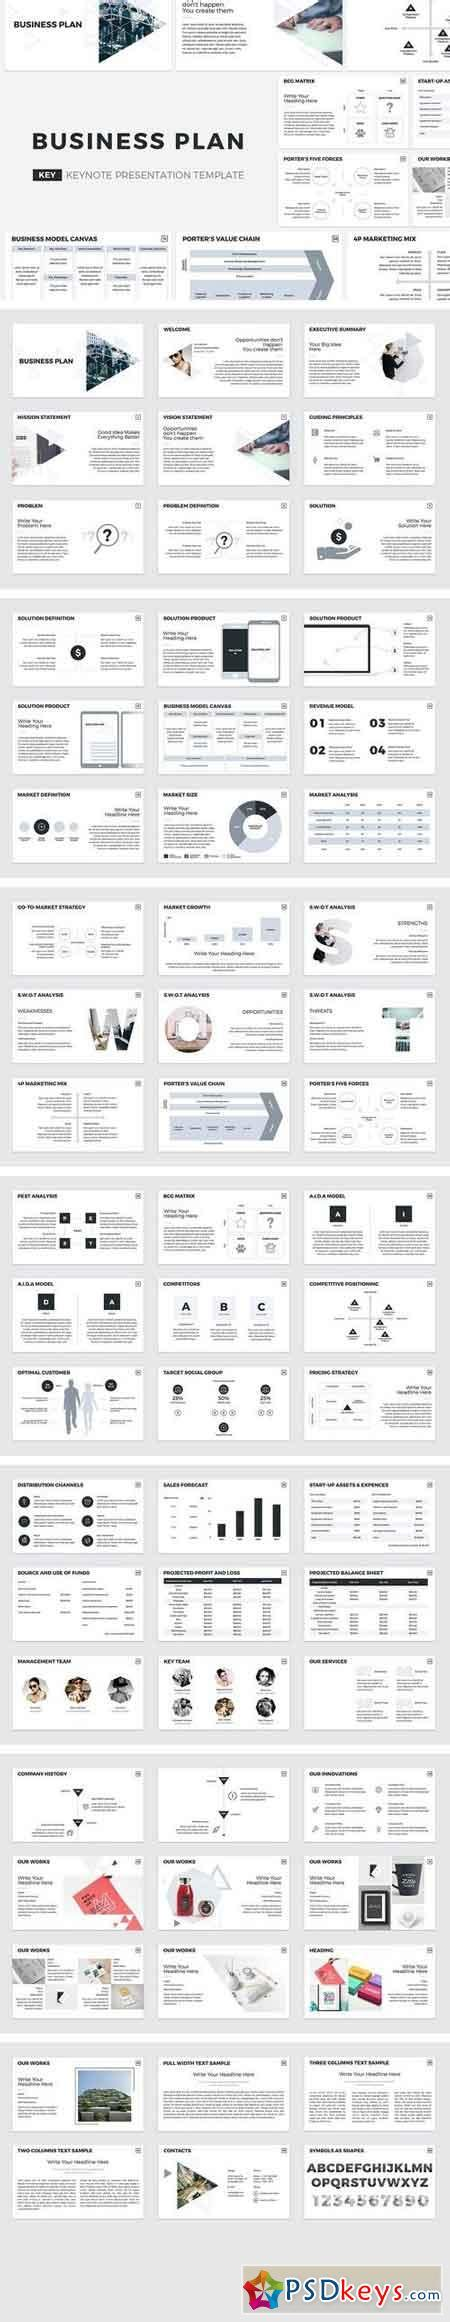 template business plan keynote template 187 free download photoshop vector stock image via